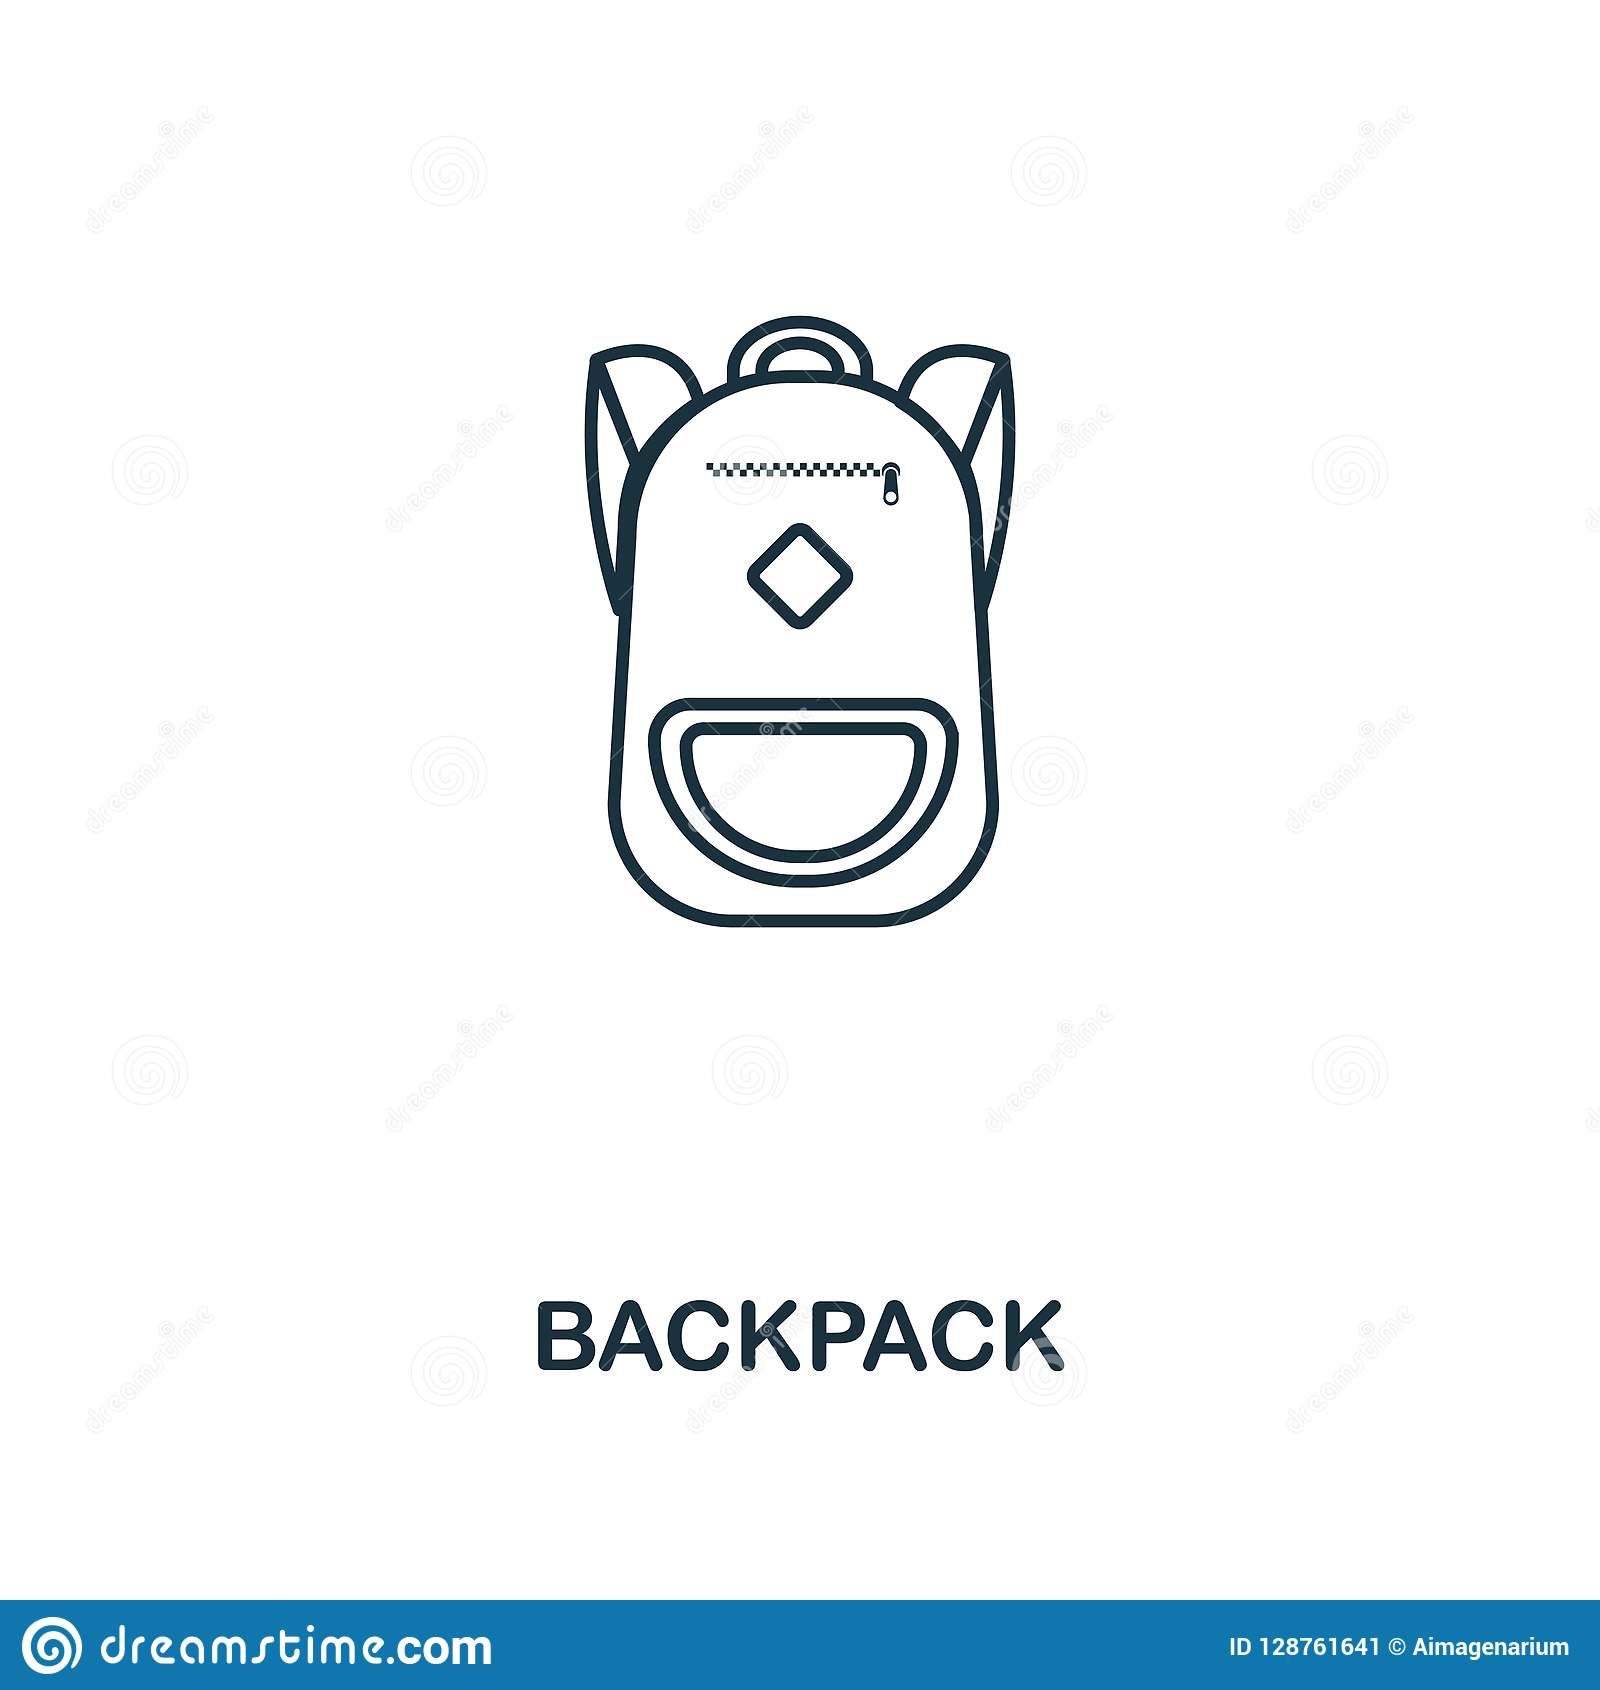 Backpack Outline Icon Creative Design From School Icon Collection Premium Backpack Outline Icon For Web Design Apps Software Stock Illustration Illustration Of Silhouette Graphic 128761641